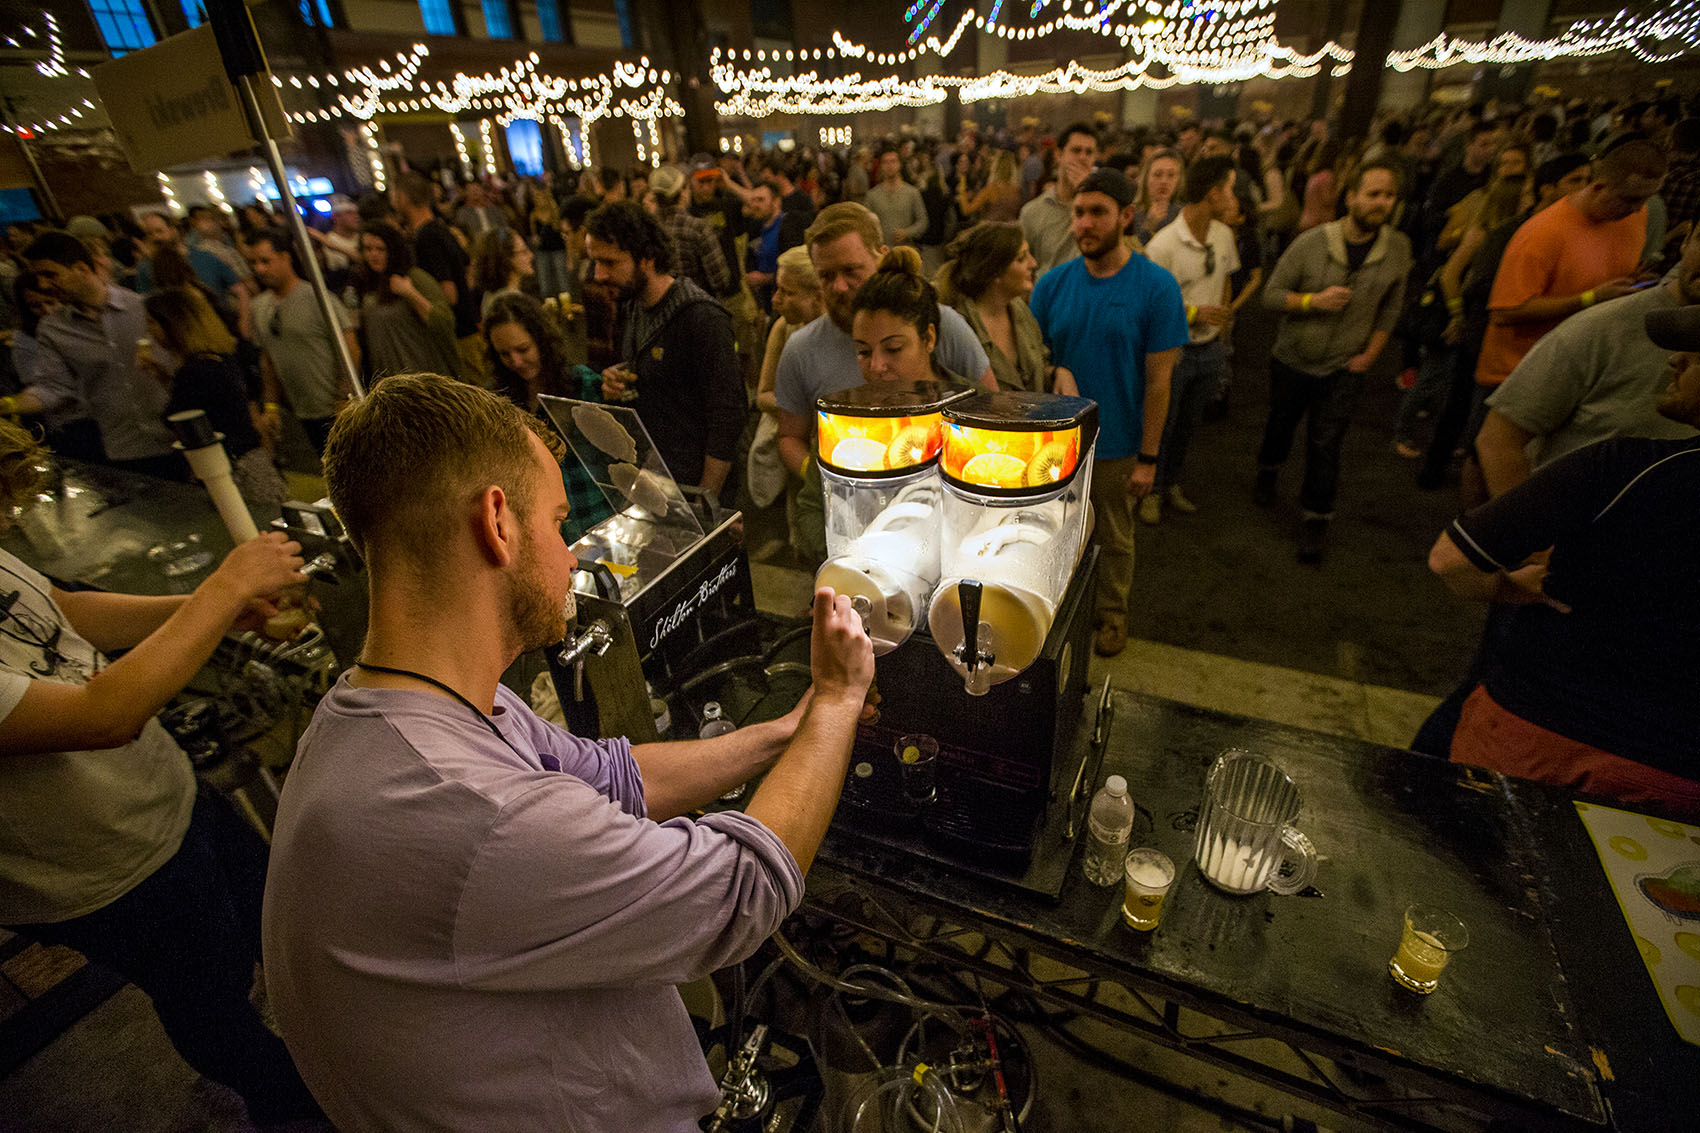 Hundreds gathered for the Copenhagen Beer Festival at the SoWa Power Station in the South End Friday and Saturday. Here, William Blennow of Sweden's Omnipollo Brewing tops a beer with frozen lemonade IPA as he serves a line that stretches to the other end of the building. (Jesse Costa/WBUR)